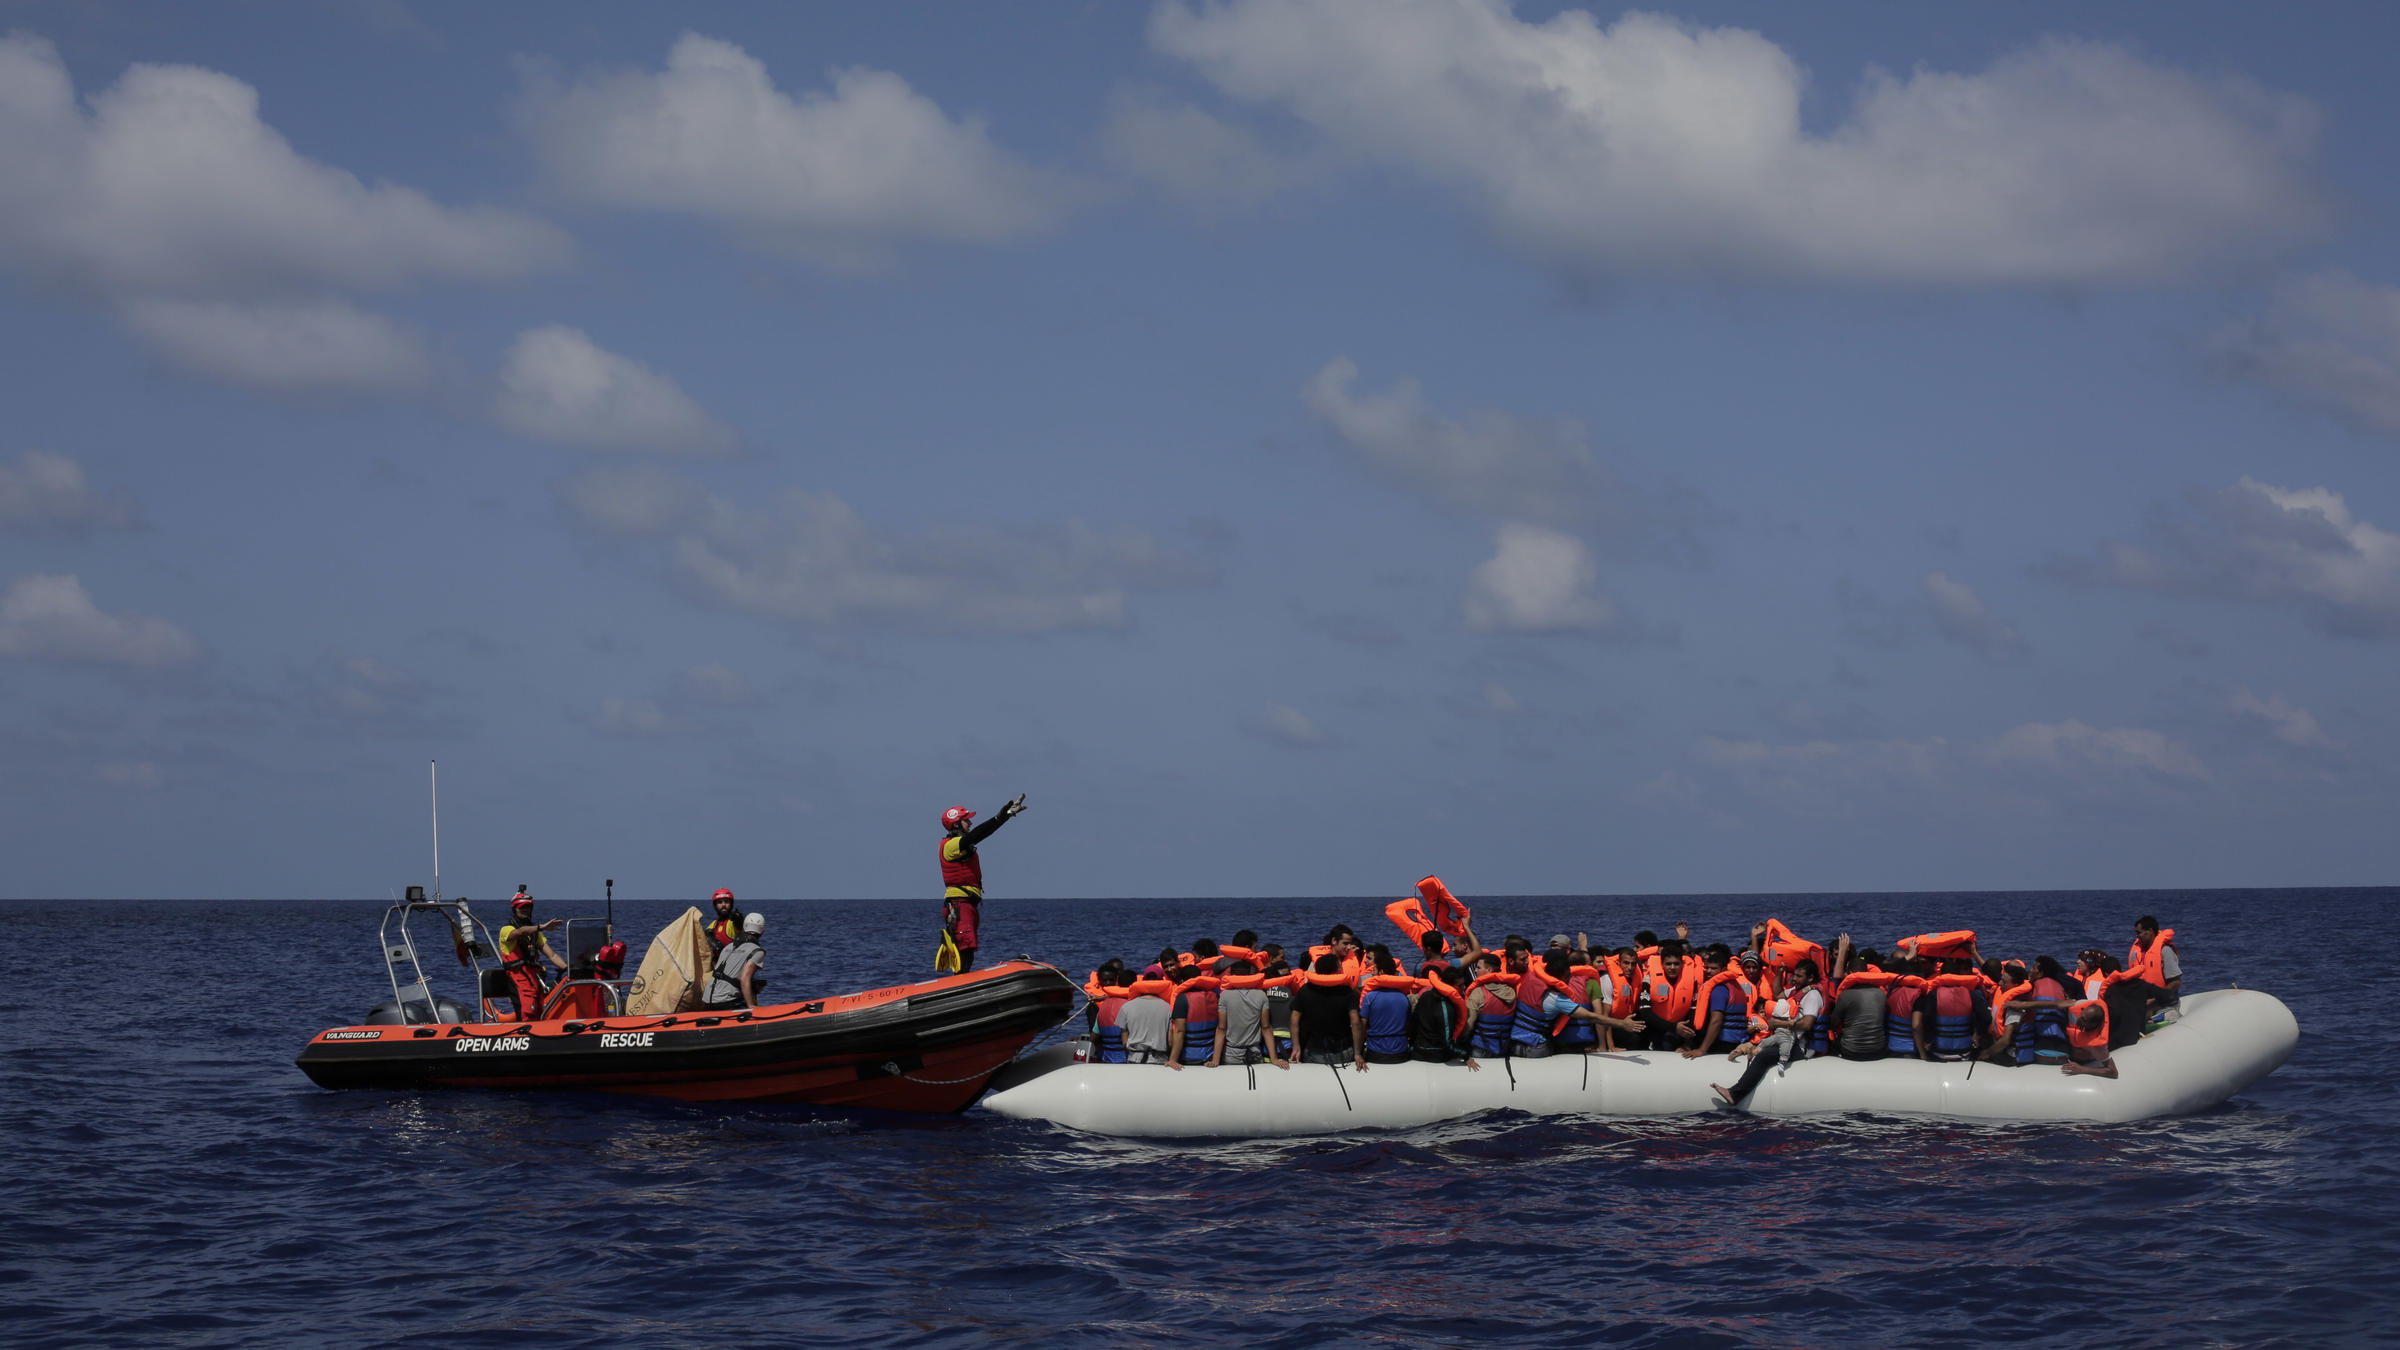 At least 25 dead in migrant shipwreck off Libya